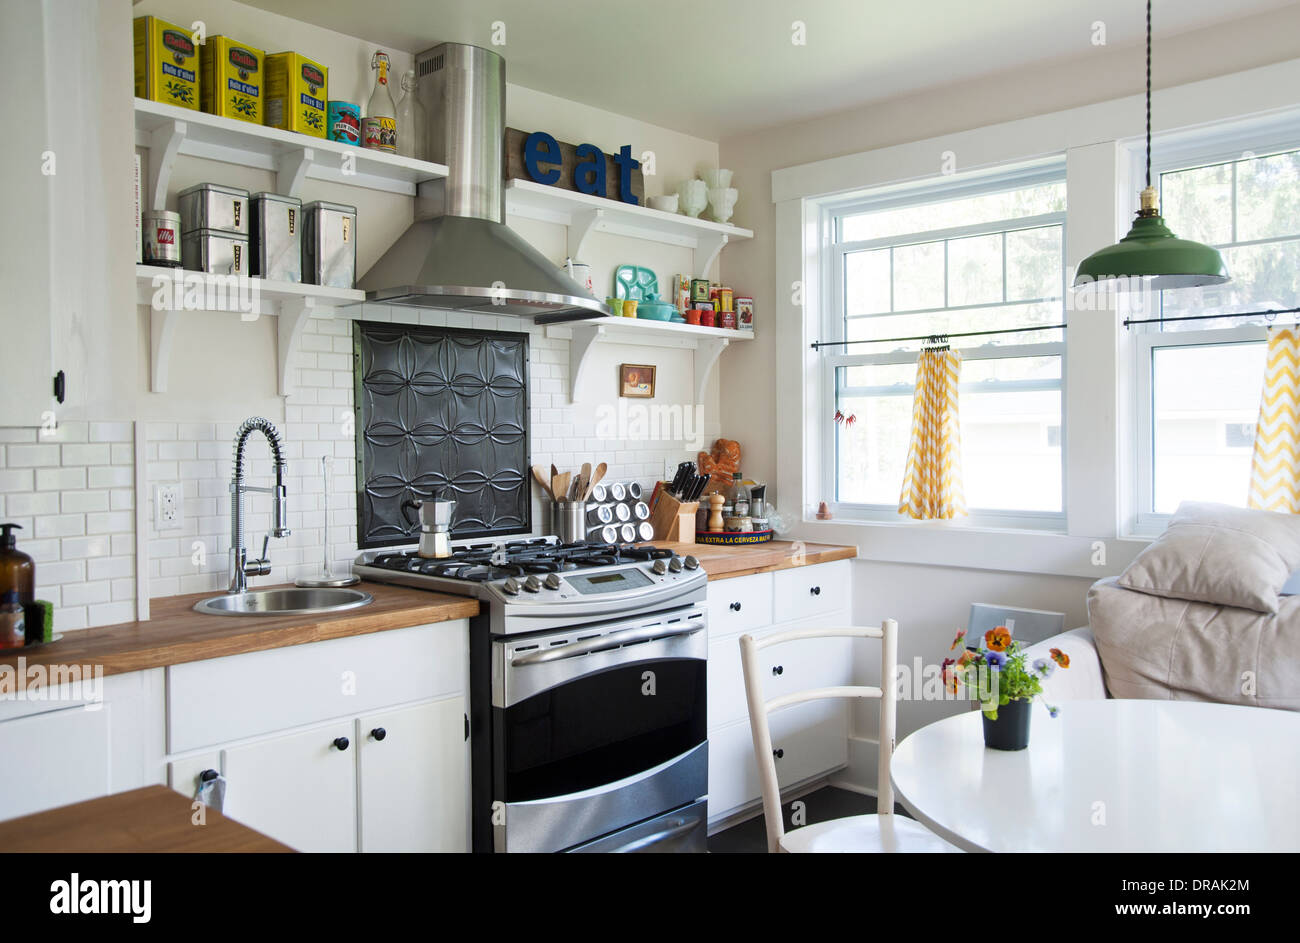 Bright and comfortable country style kitchen - Stock Image & Country Style Kitchen Stock Photos \u0026 Country Style Kitchen Stock ...